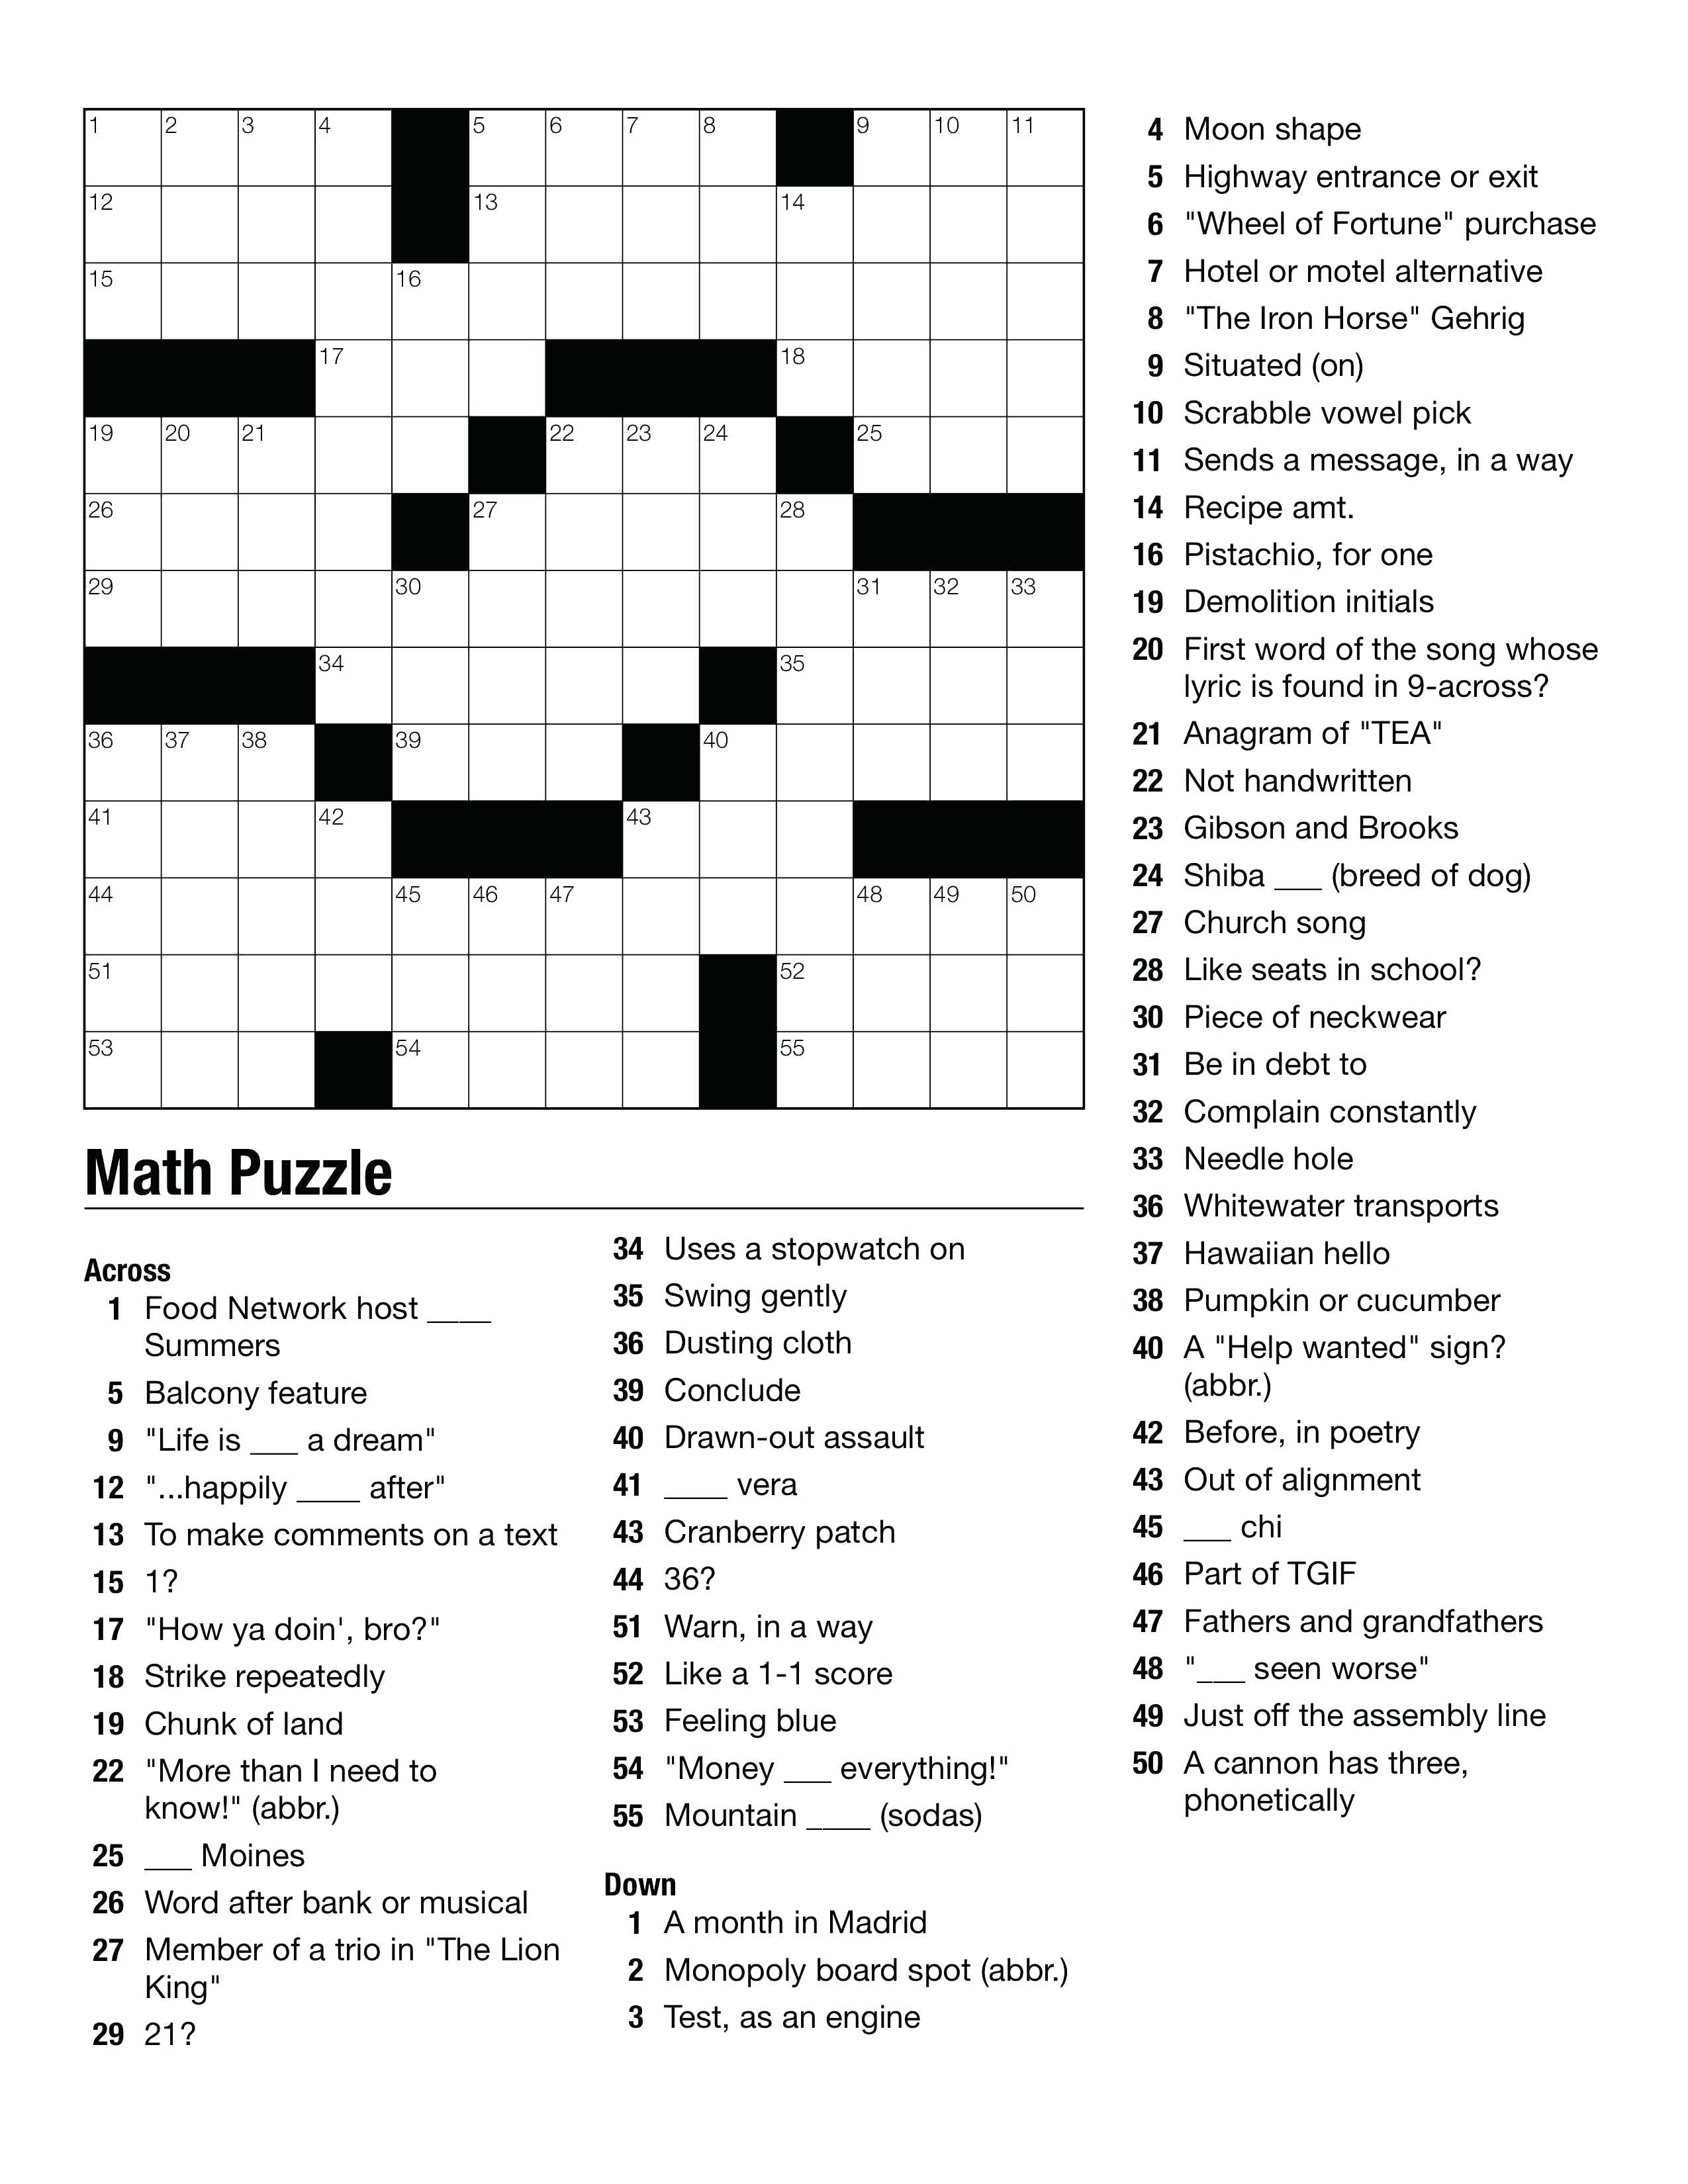 Geometry Puzzles Math Geometry Images Teaching Ideas On Crossword - Printable Crossword Middle School